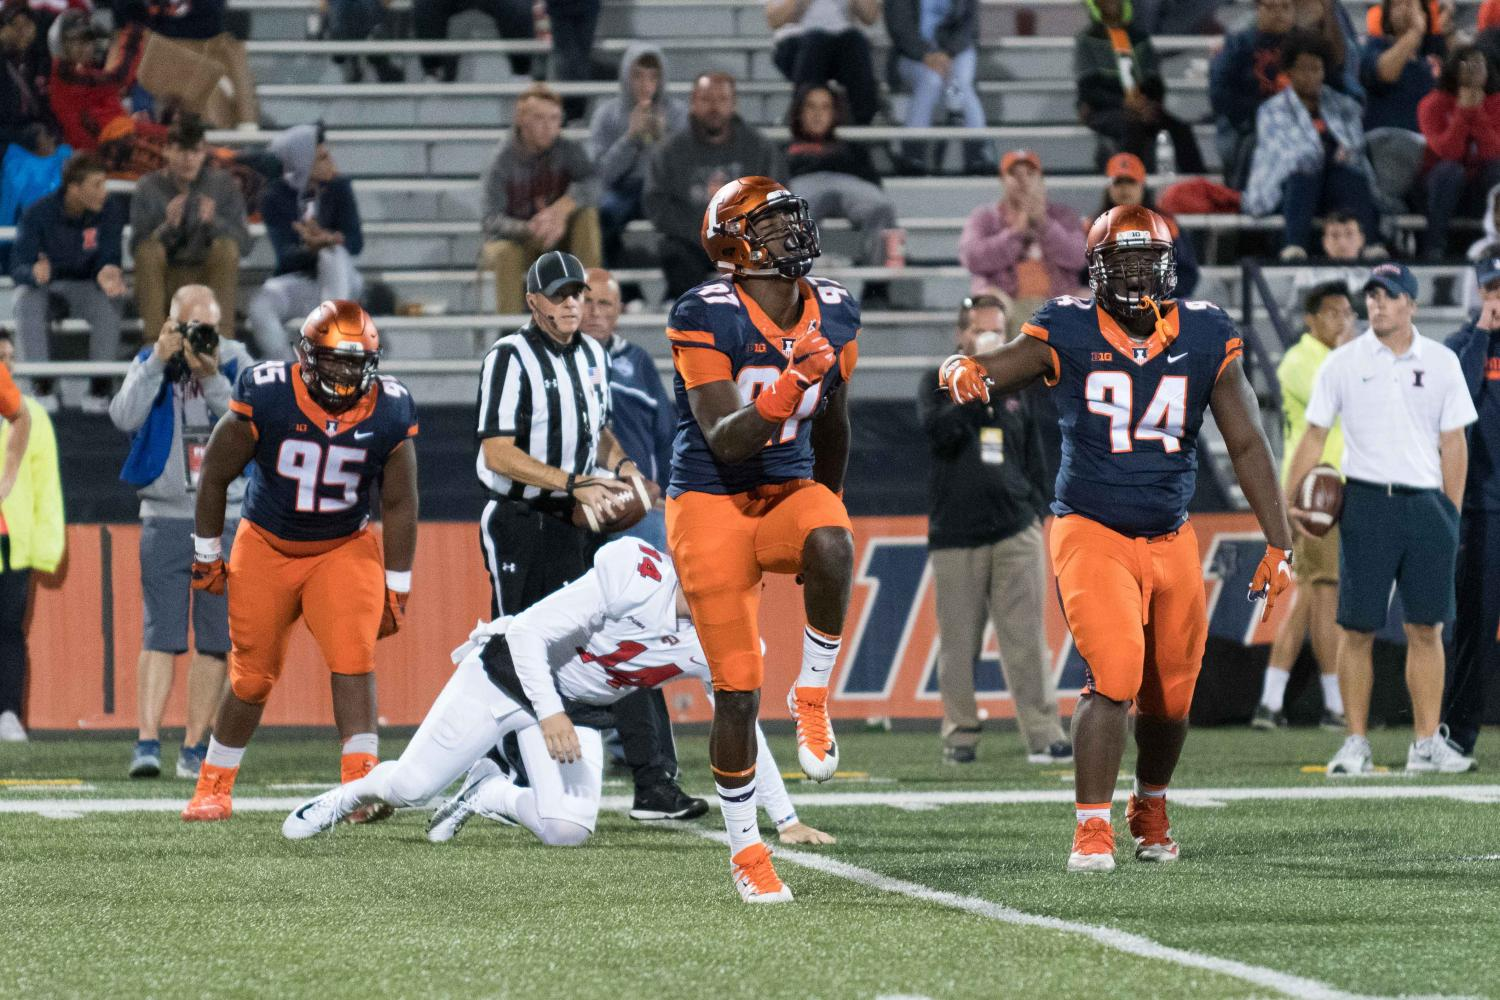 Freshman defensive end Bobby Roundtree celebrates after making a tackle during the Sept. 9 game against Western Kentucky. The Illini won 20-7.